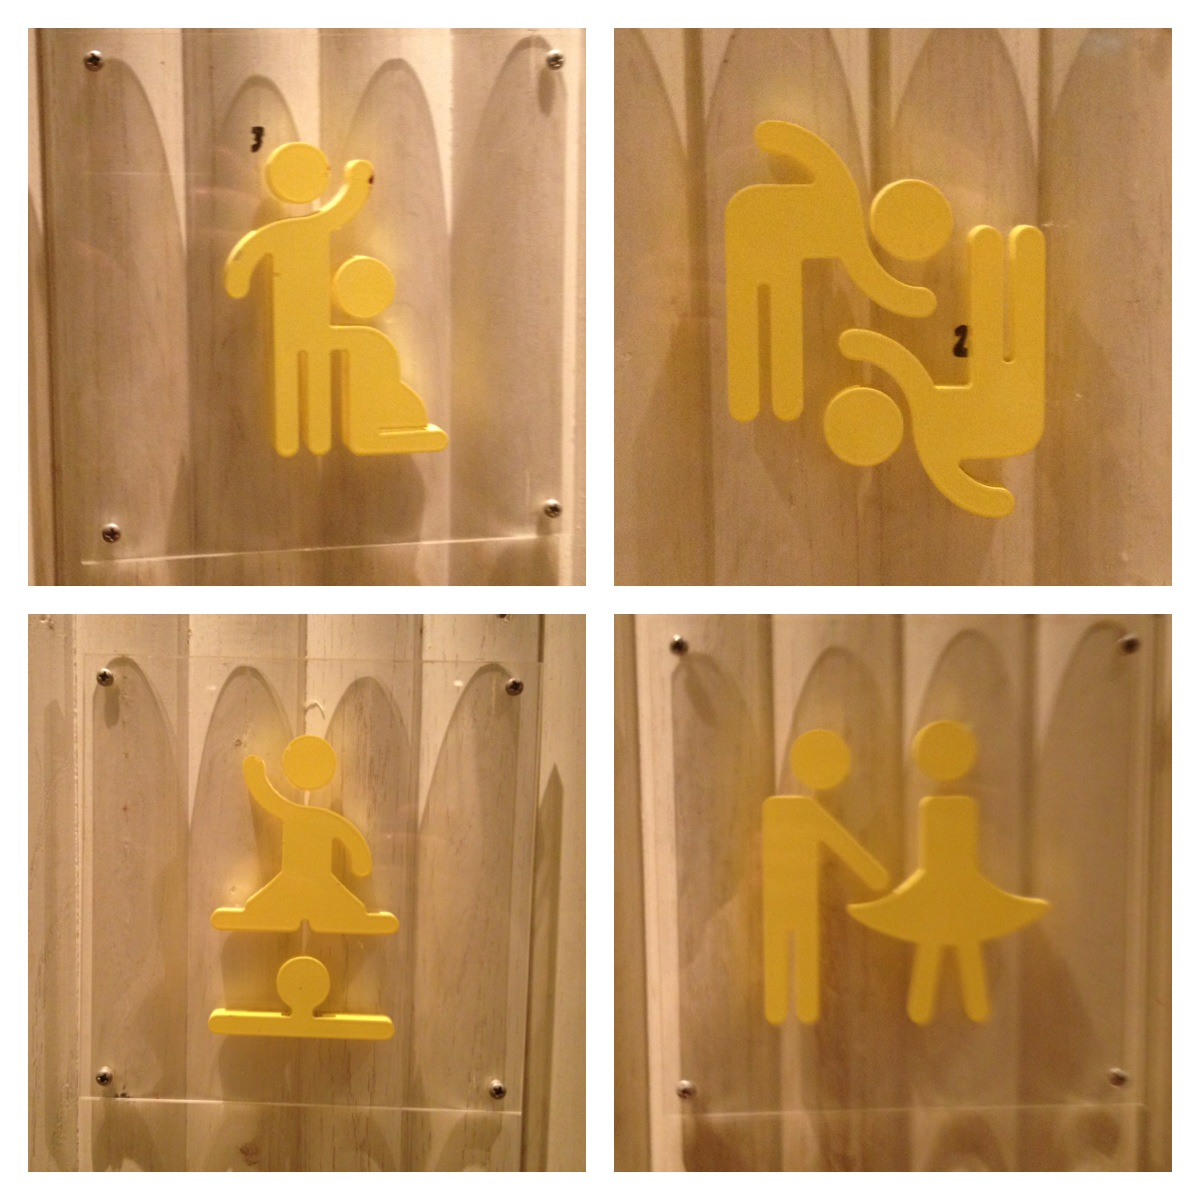 Gallery images and information: Unisex Bathrooms In Europe